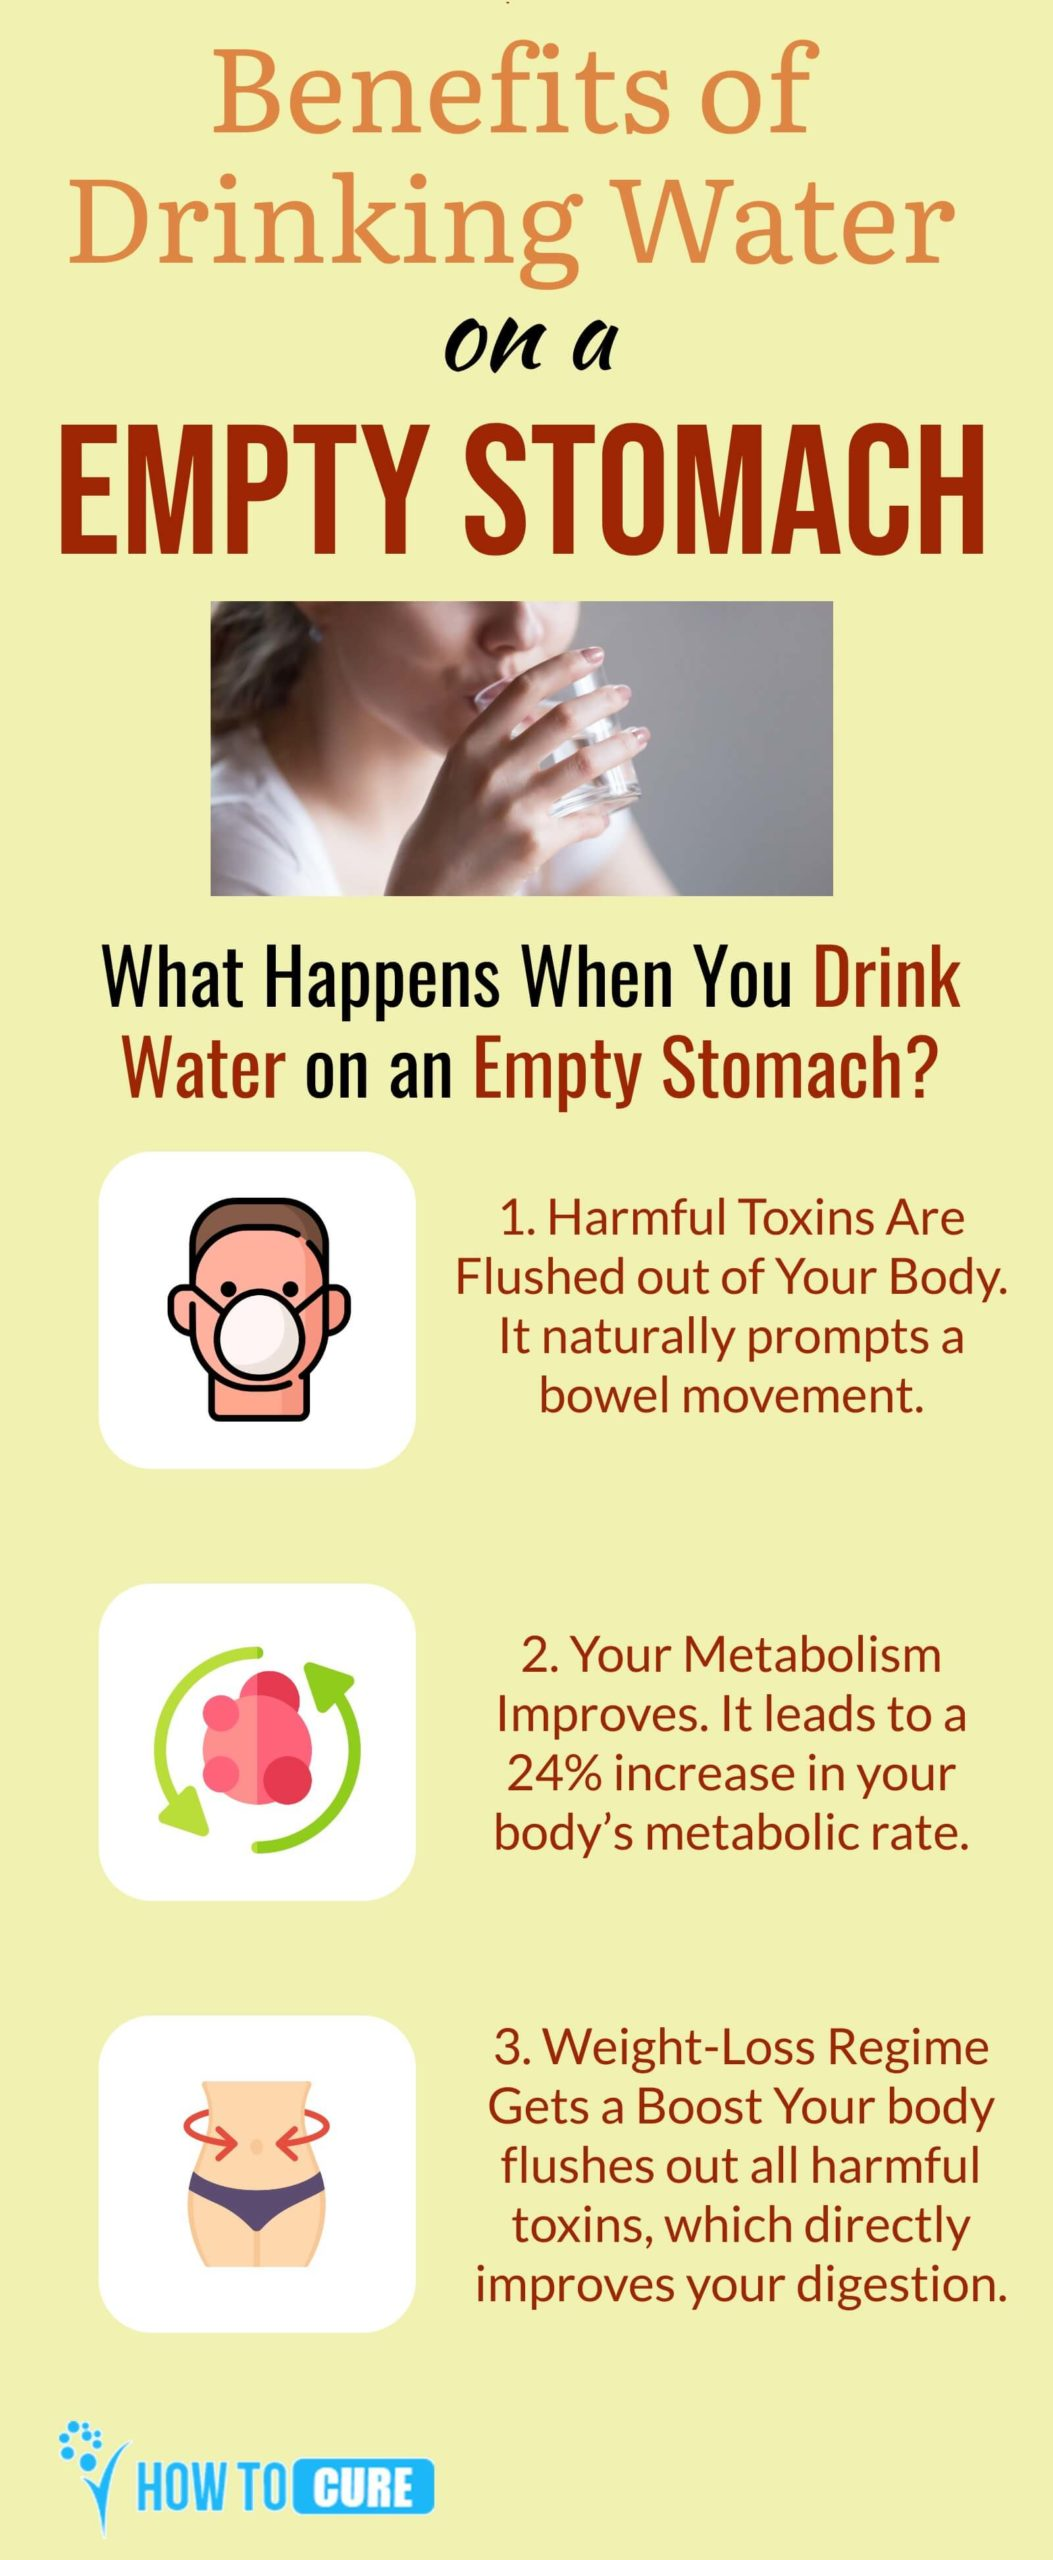 Drinking water empty stomach